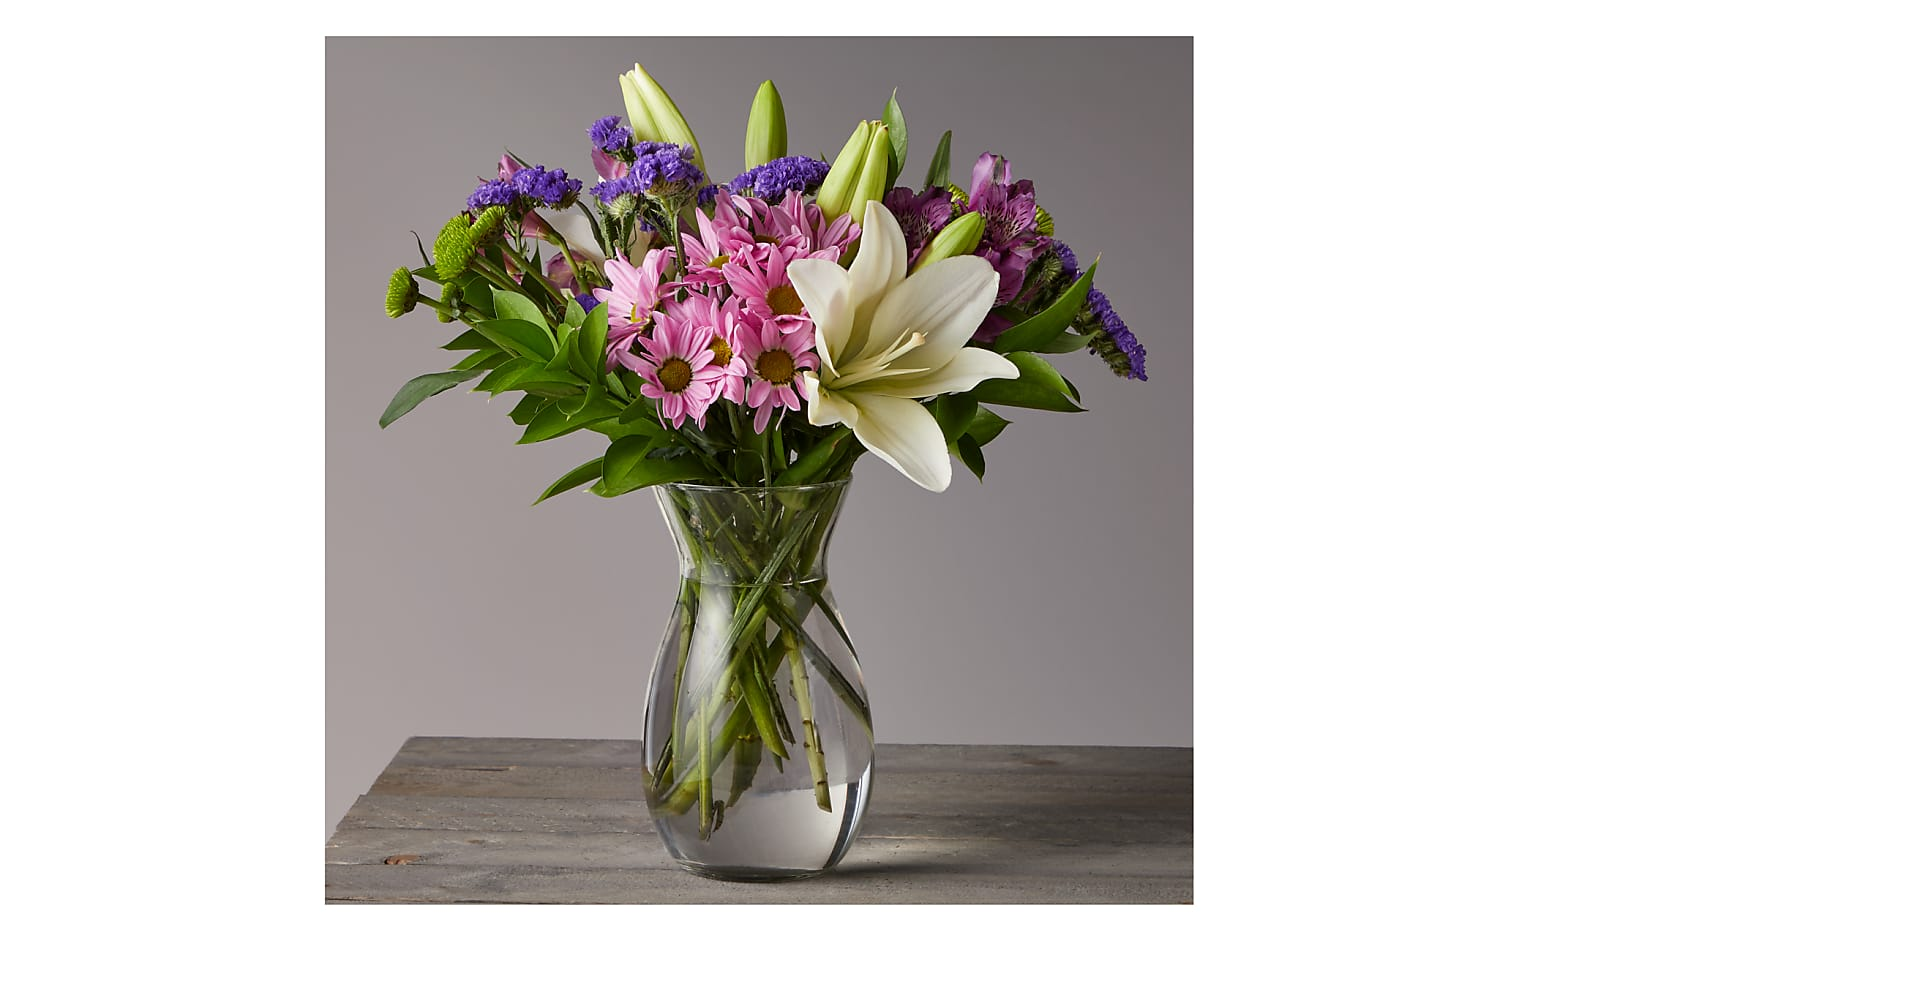 Lavender Fields Mixed Flower Bouquet with Vase - Image 1 Of 5